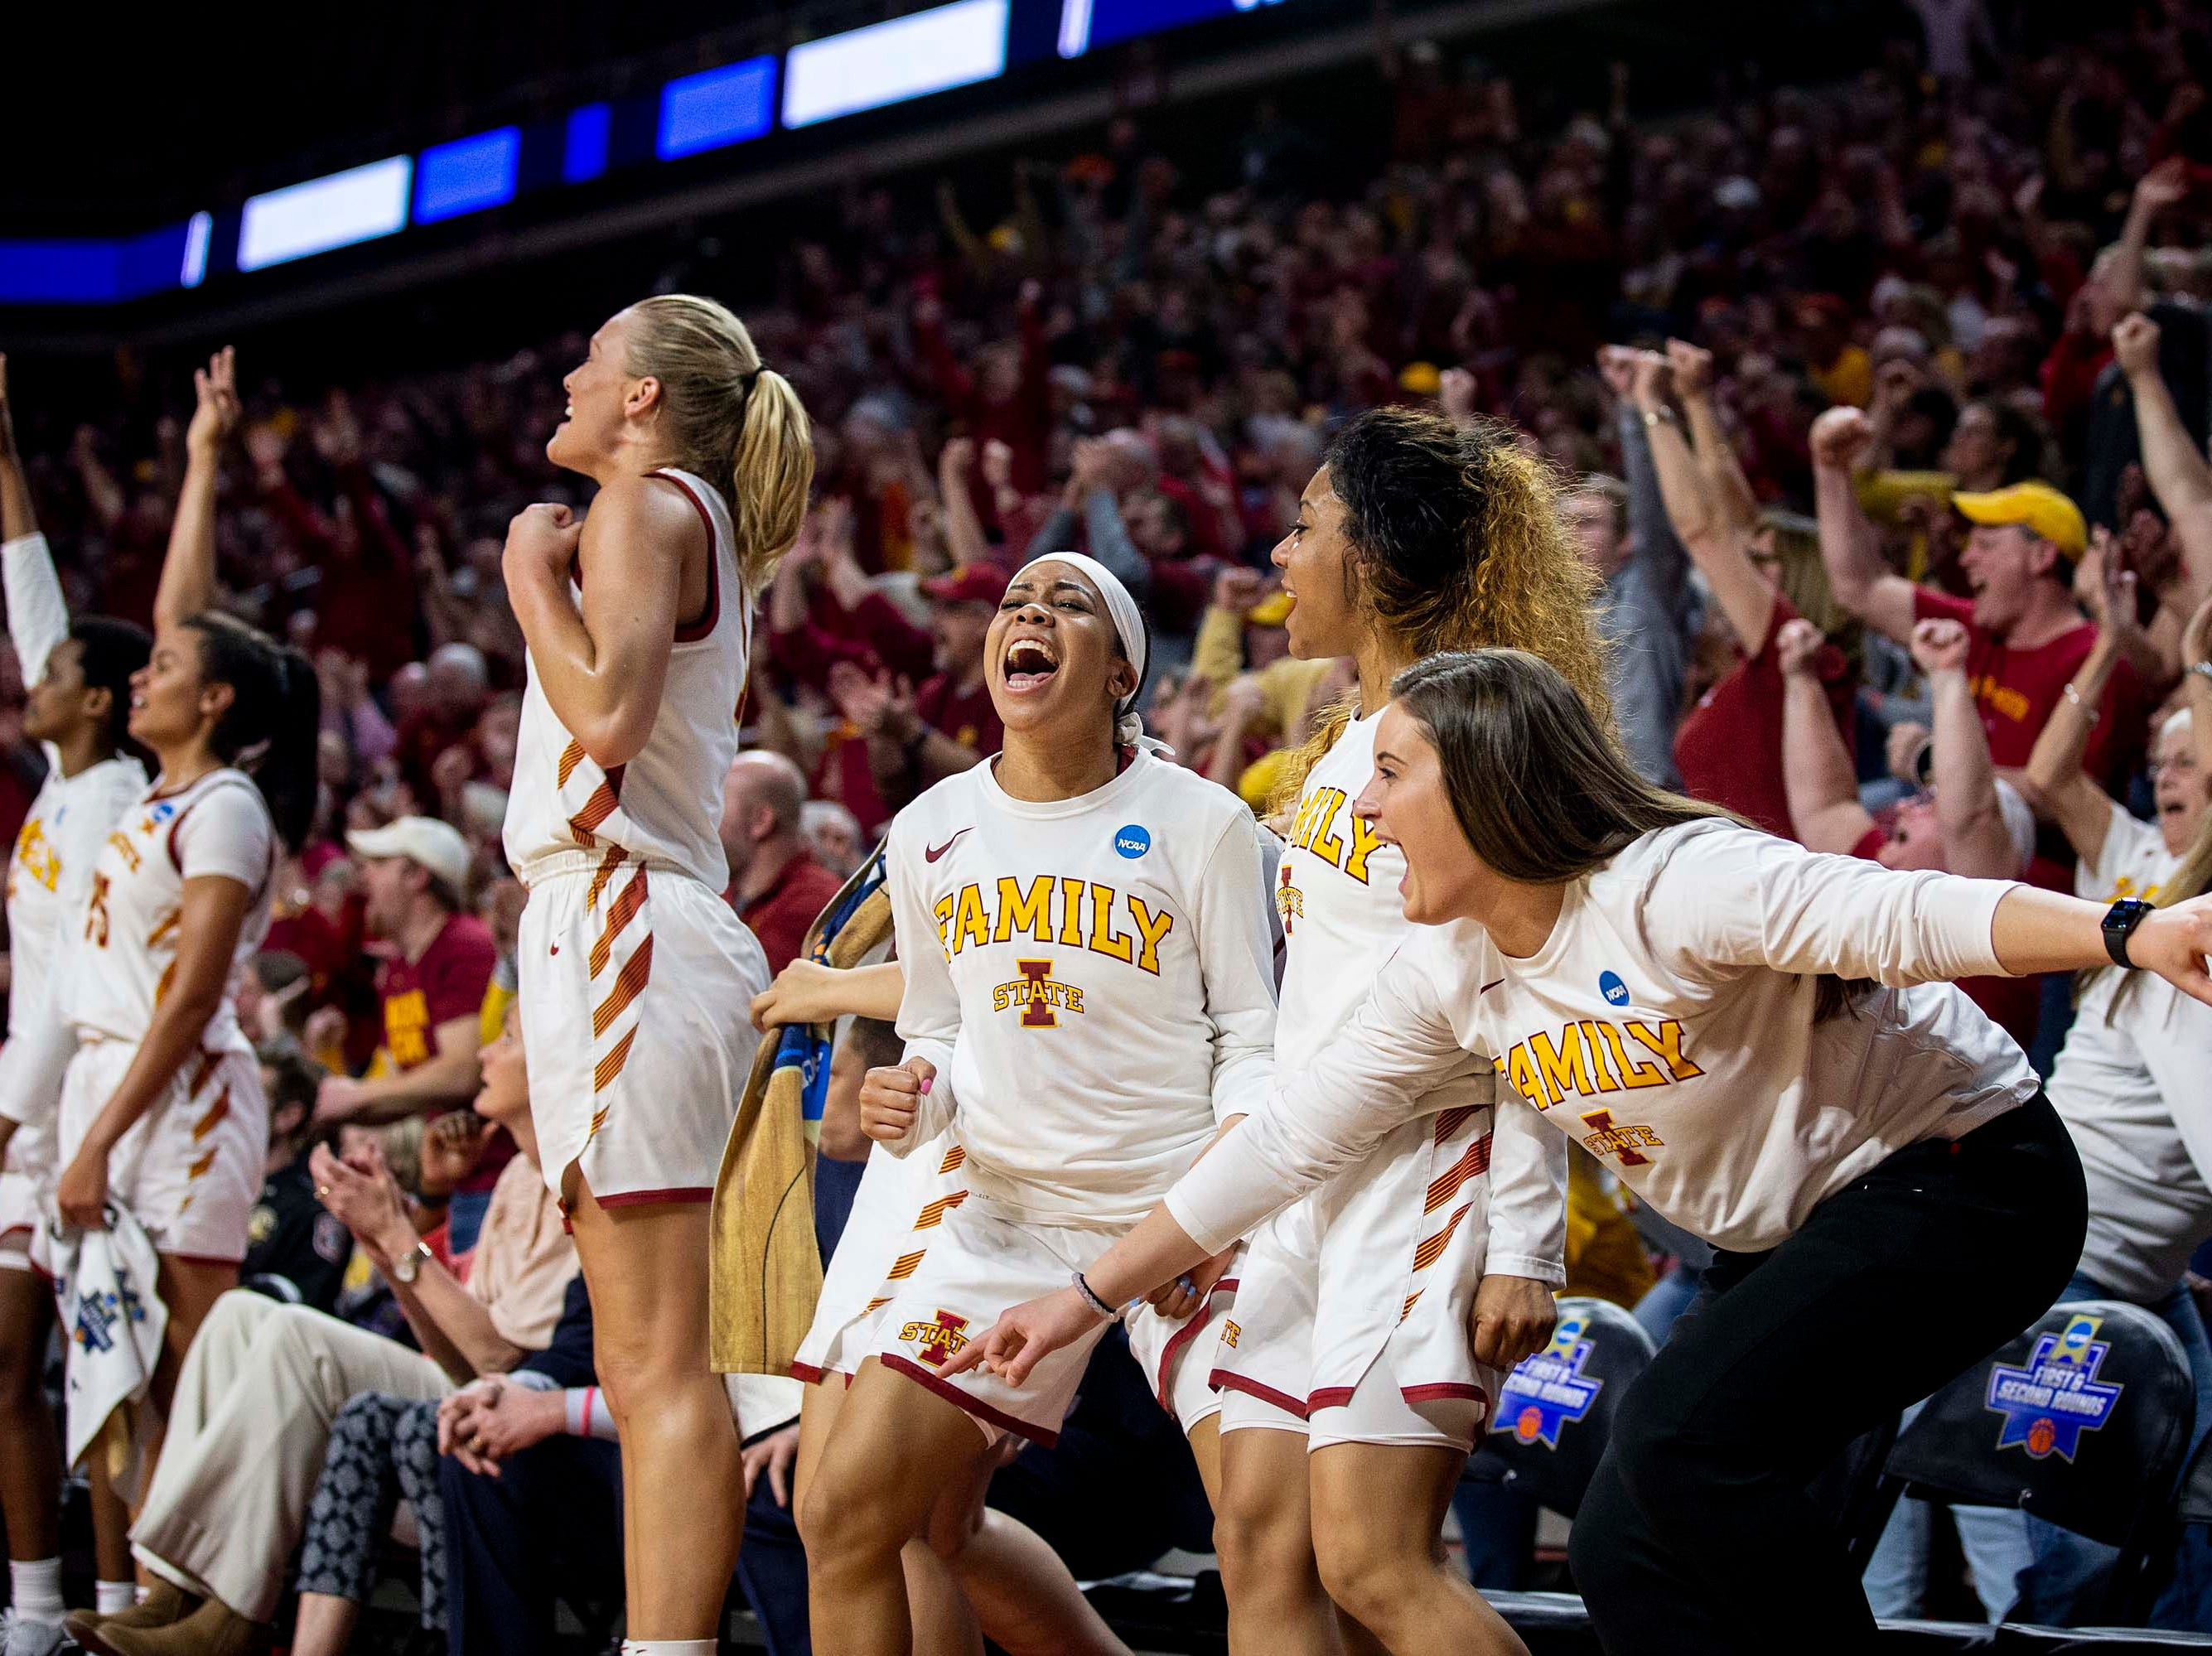 Iowa State players cheer after scoring during the NCAA Tournament second-round match-up between Iowa State and Missouri State on Monday, March 25, 2019, in Hilton Coliseum, in Ames, Iowa.